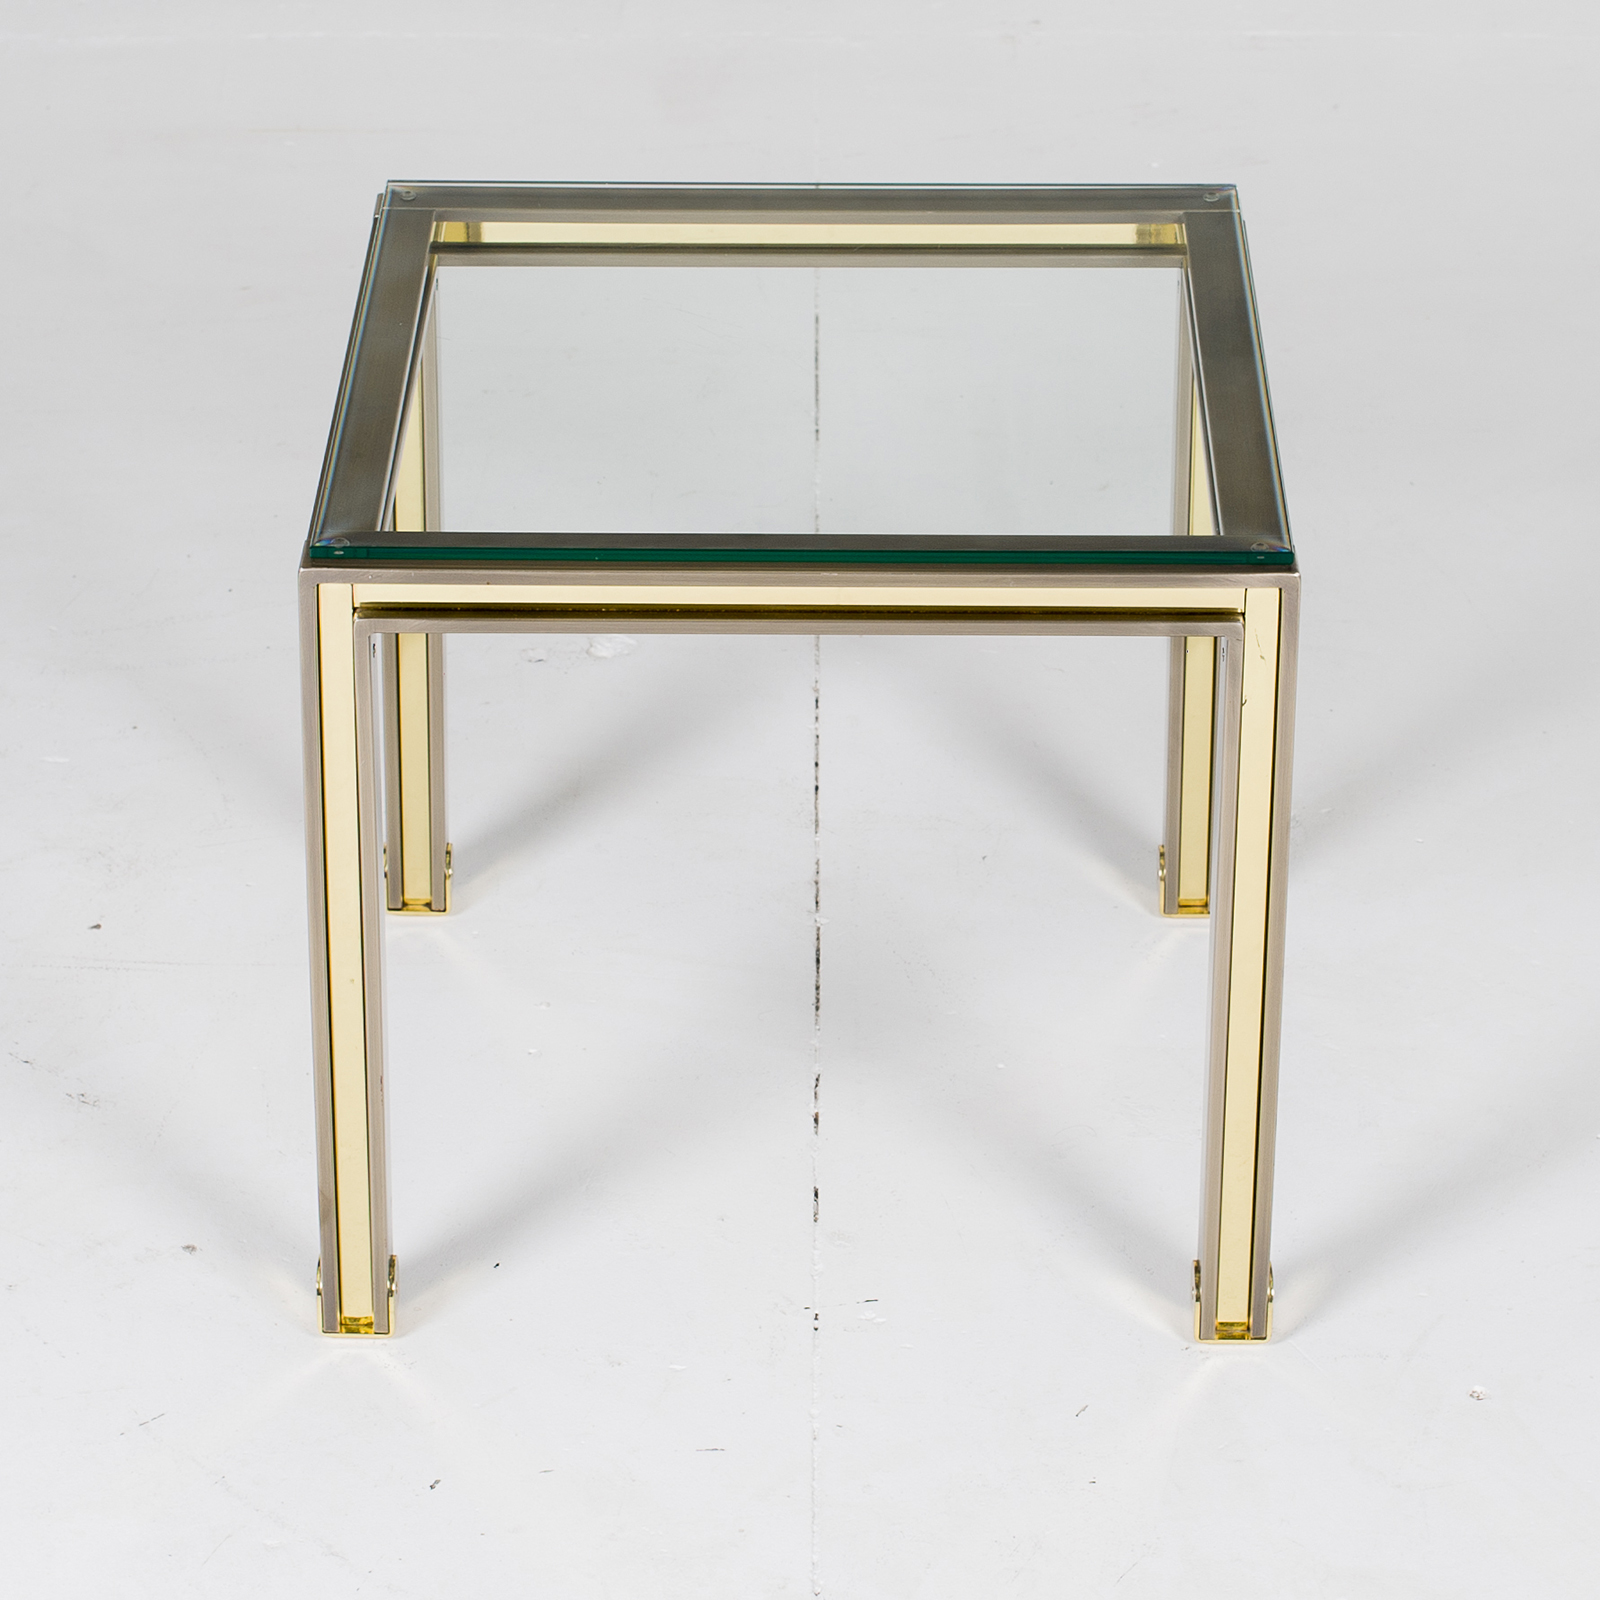 Side Table In Chrome And Brass By Romeo Rega, 1960s, Italy 2854